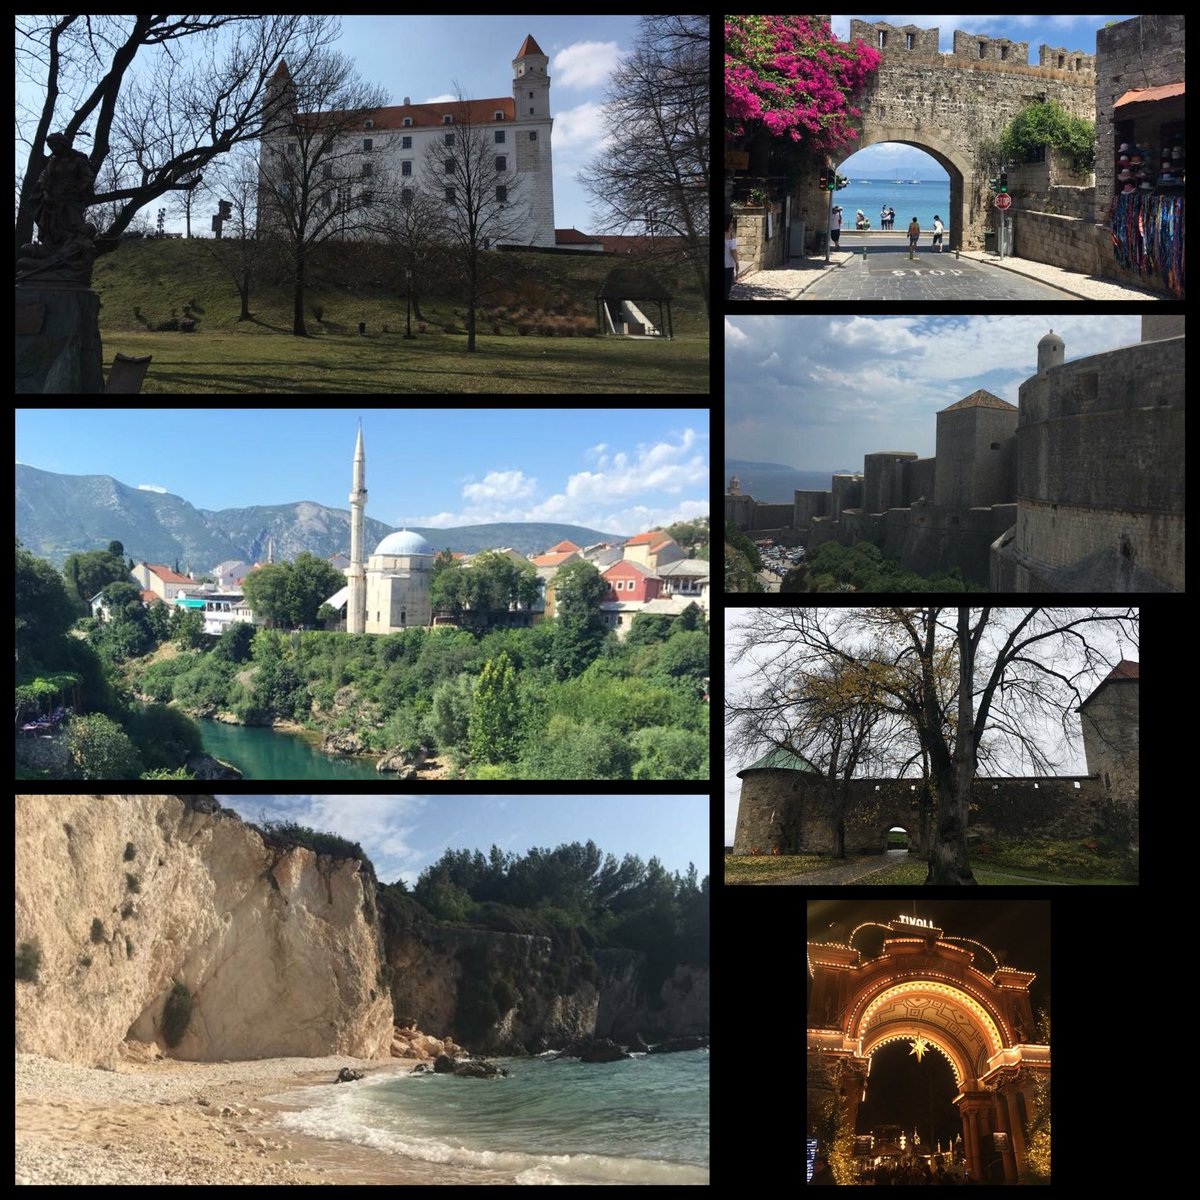 This years travelling was amazing, a lot of new places was explored. Hope for many more next year.ends the year in Denmark #Bratislava #Rhodes #Bosnia #Dubrovnik #Kefalonia #Oslo #Copenhagen #travelpics #travel2018 #ttotpic.twitter.com/bJNBpjx4ka